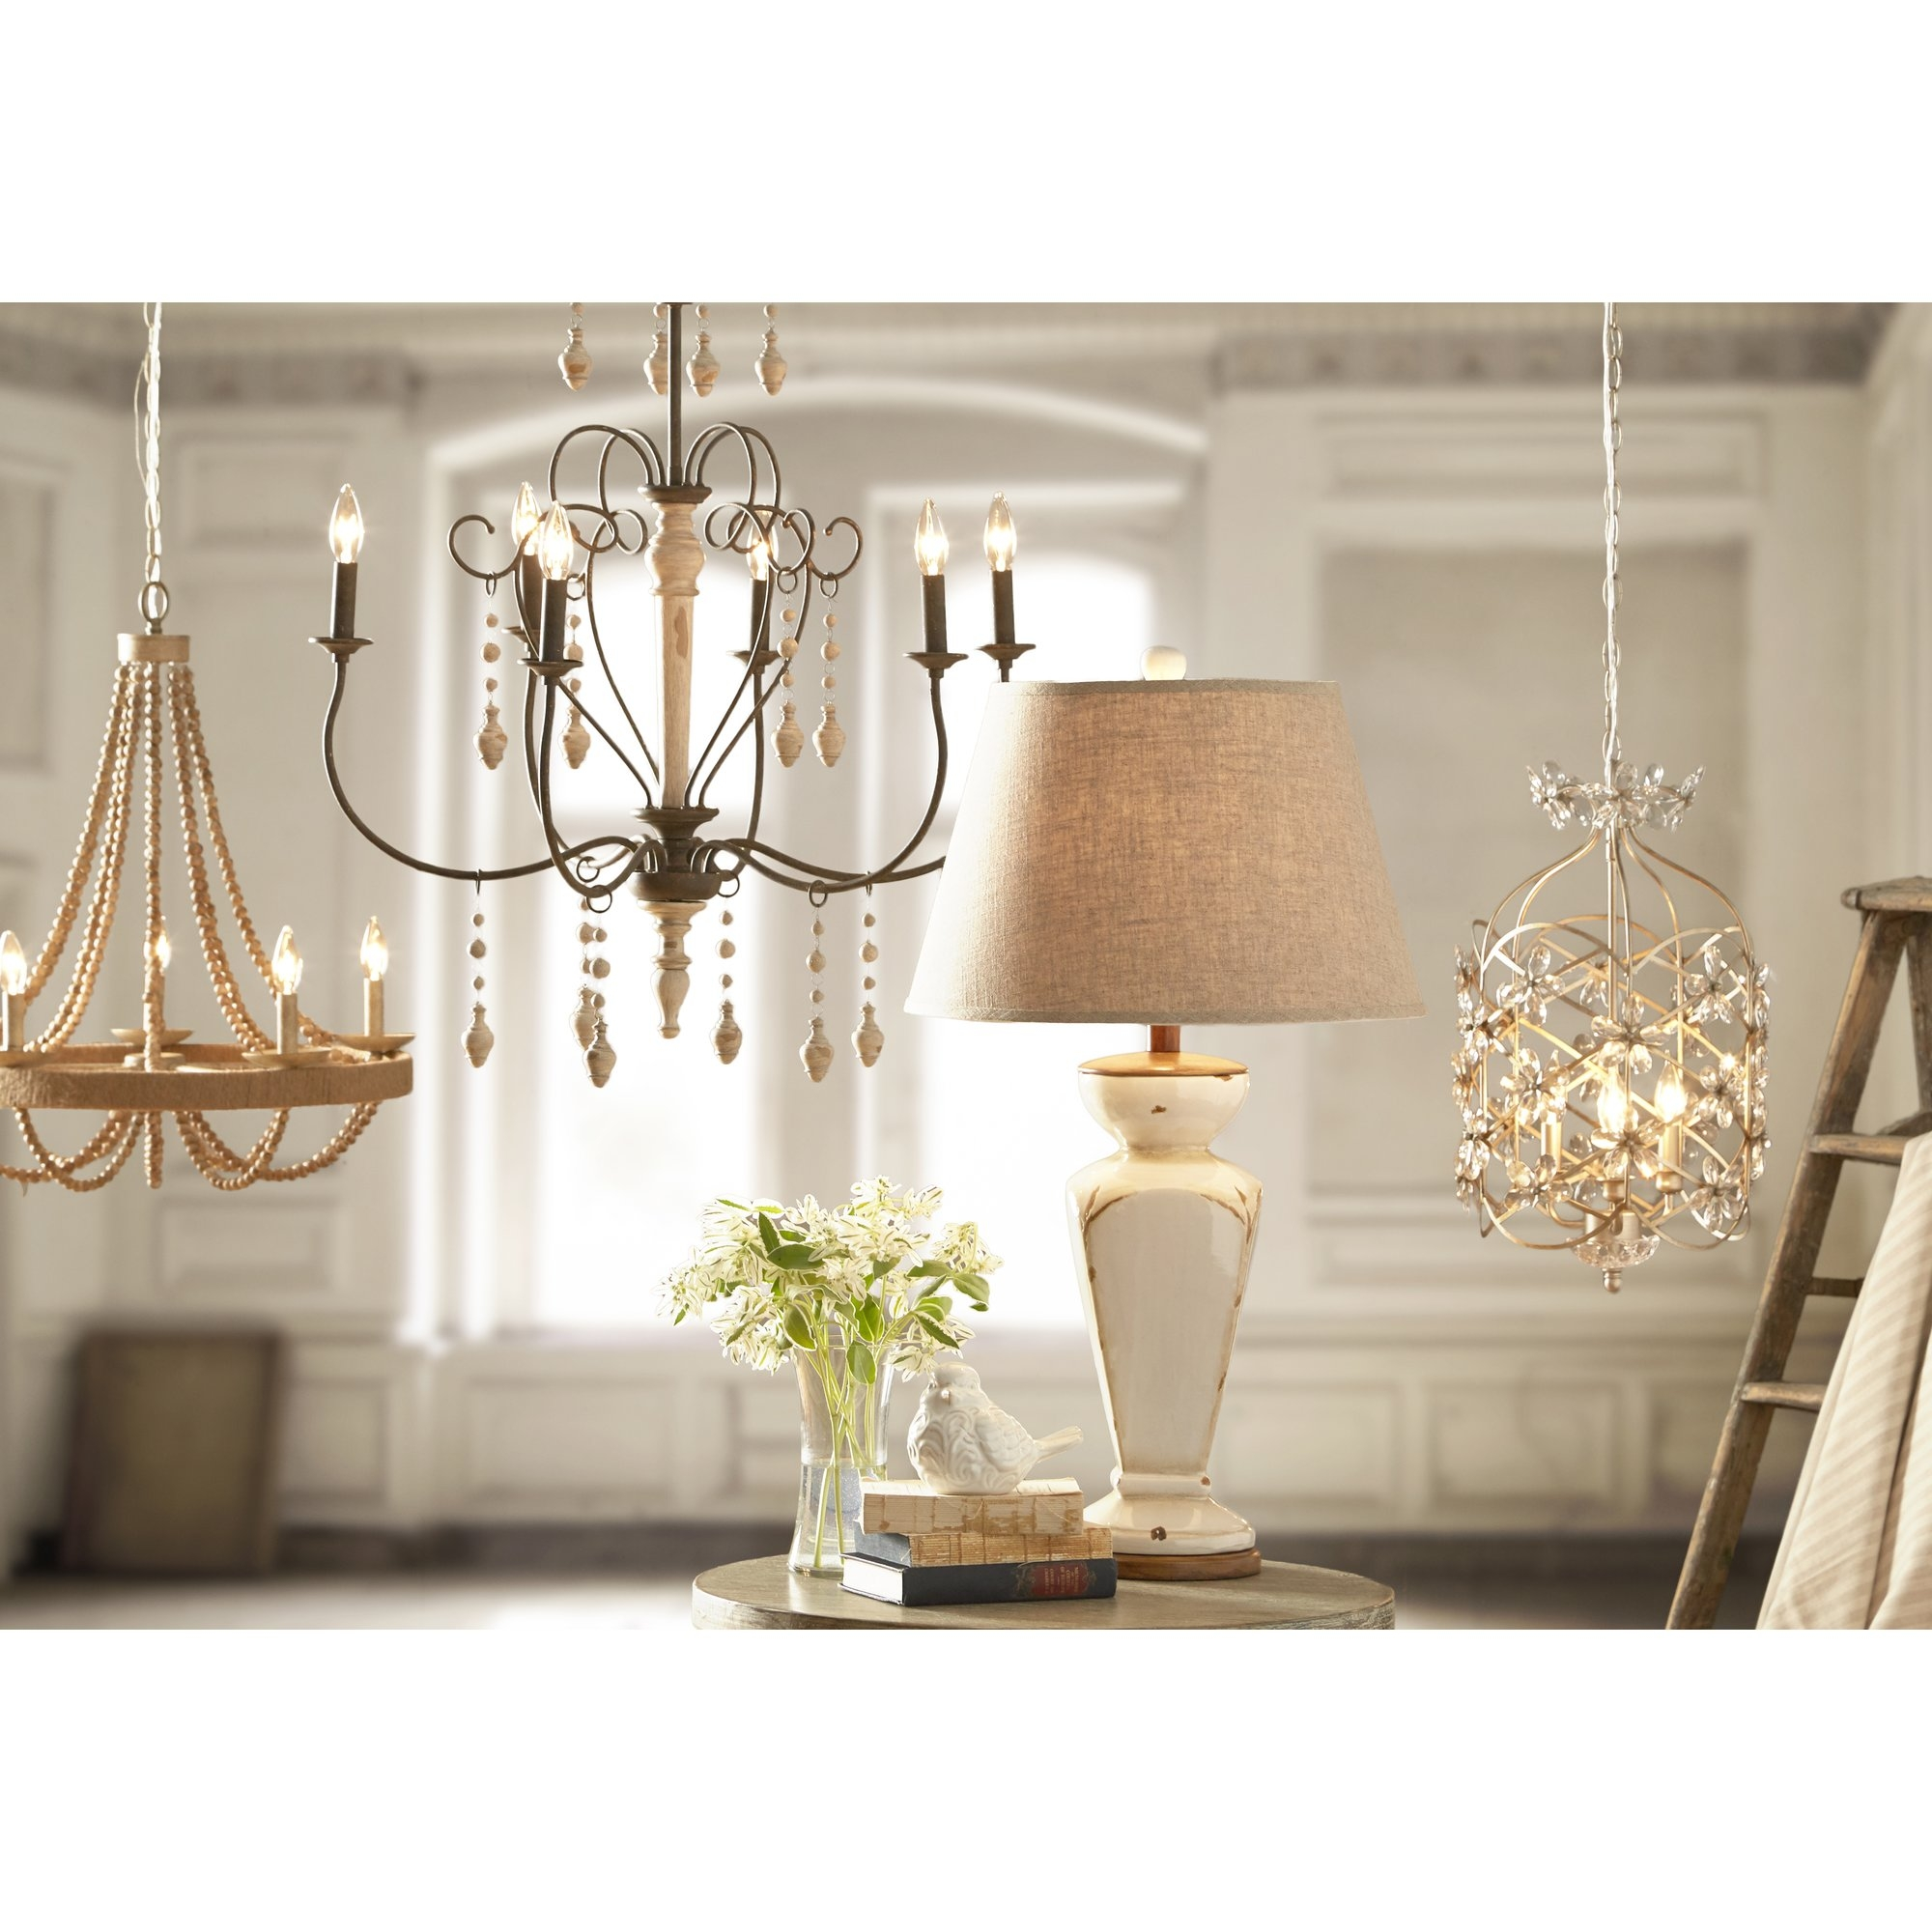 Lantieri 5 Light Candle Chandelier Reviews Joss Main In Candle Chandelier (Image 9 of 15)